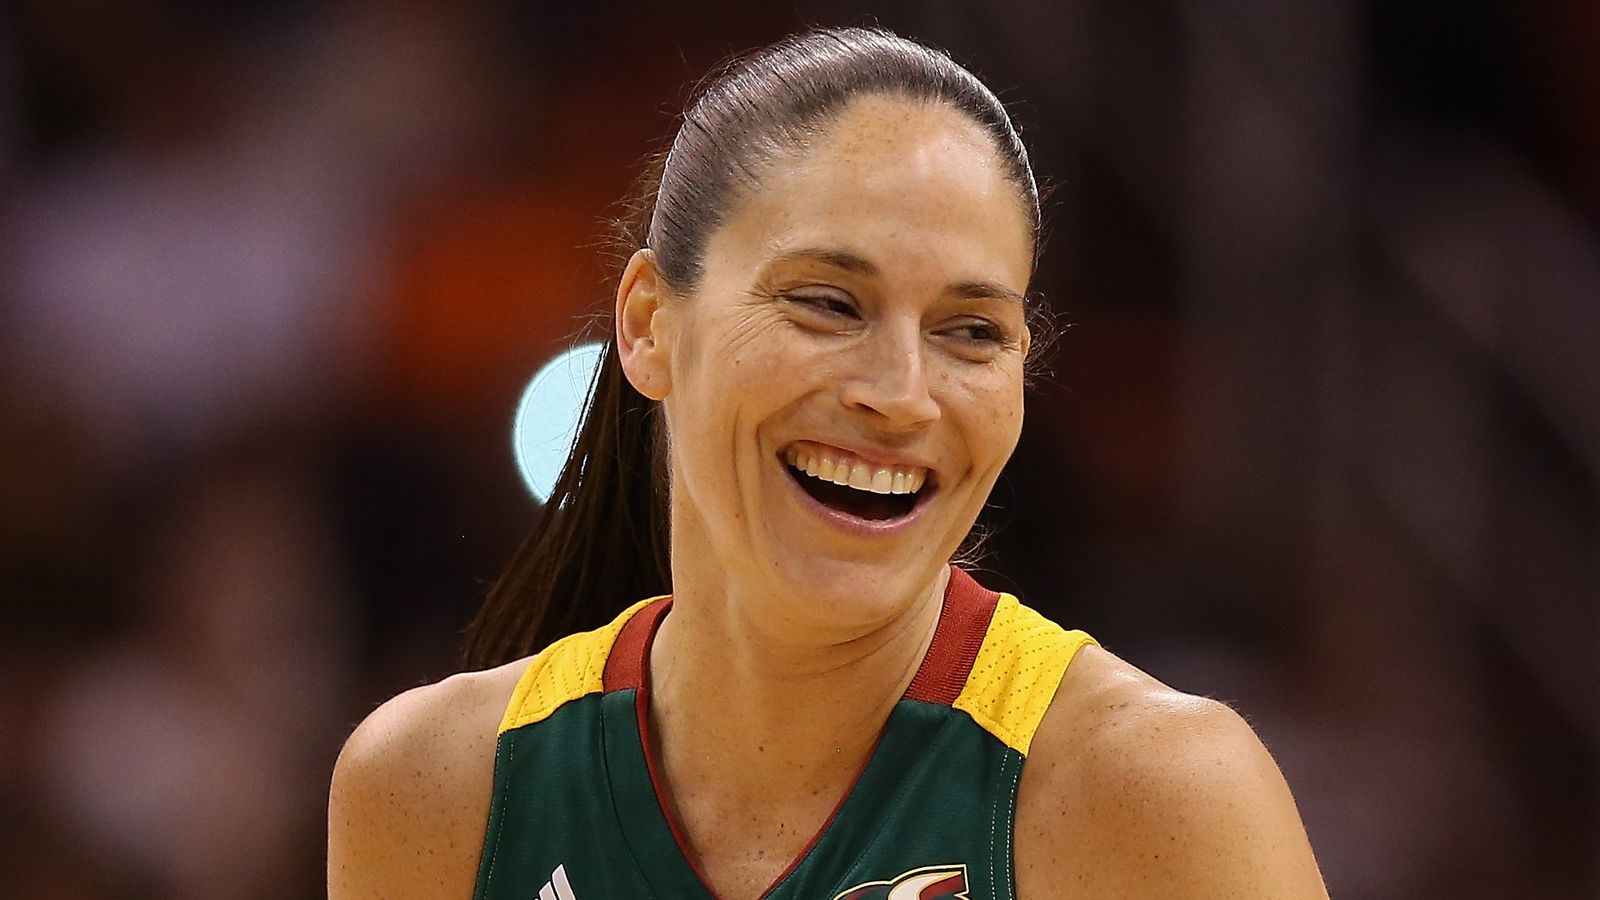 Storm star sue bird says she's dating the reign's megan rapinoe and opens up about being gay